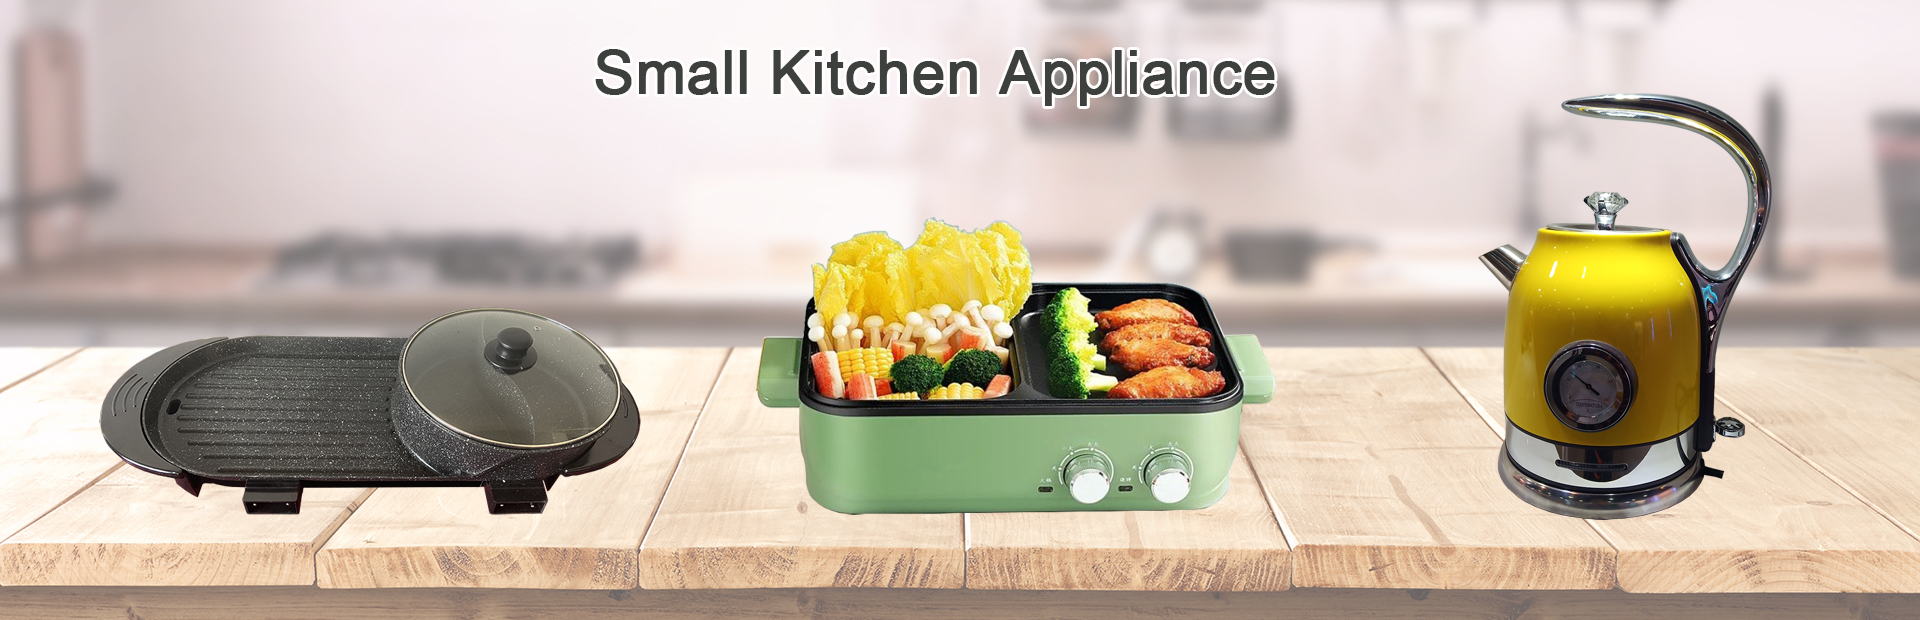 Small Kitchen Appliance electric griller